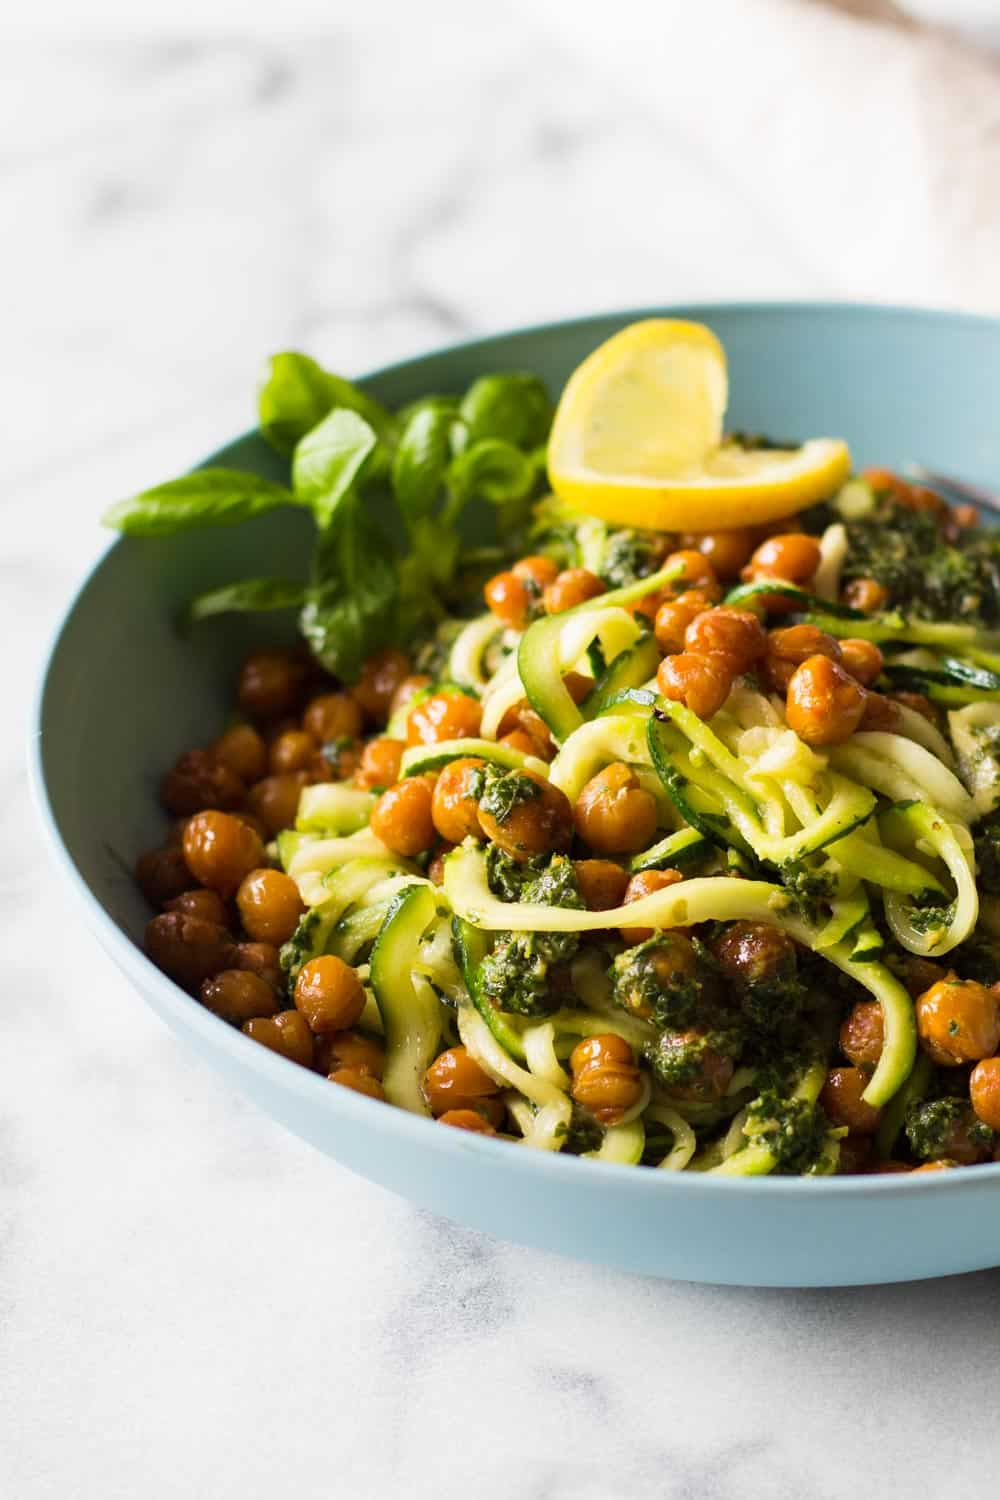 Zucchini noodles with roasted chickpeas and herb sauce, garnished with lemon slice and basil leaves, in a blue bowl.